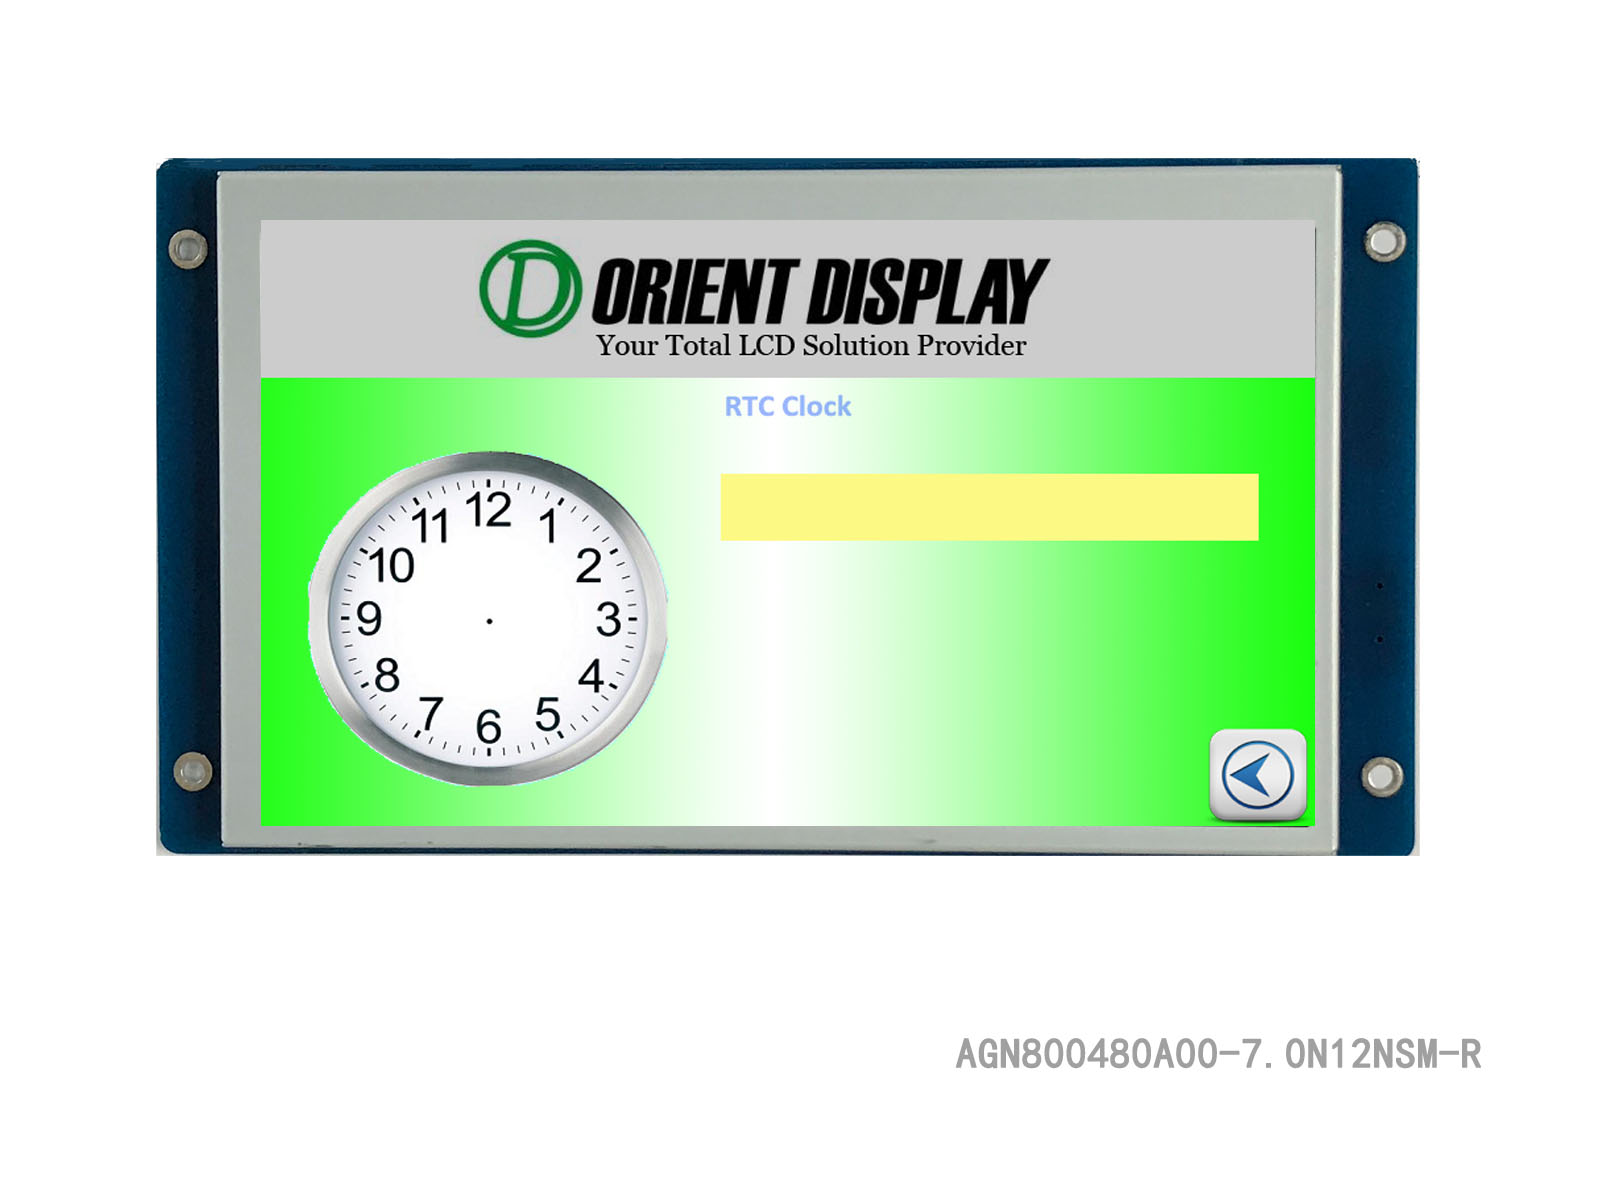 """AGN800480A00-7.0N12NSM-R (7"""" Full-Graphic Display with Resistive TP)"""